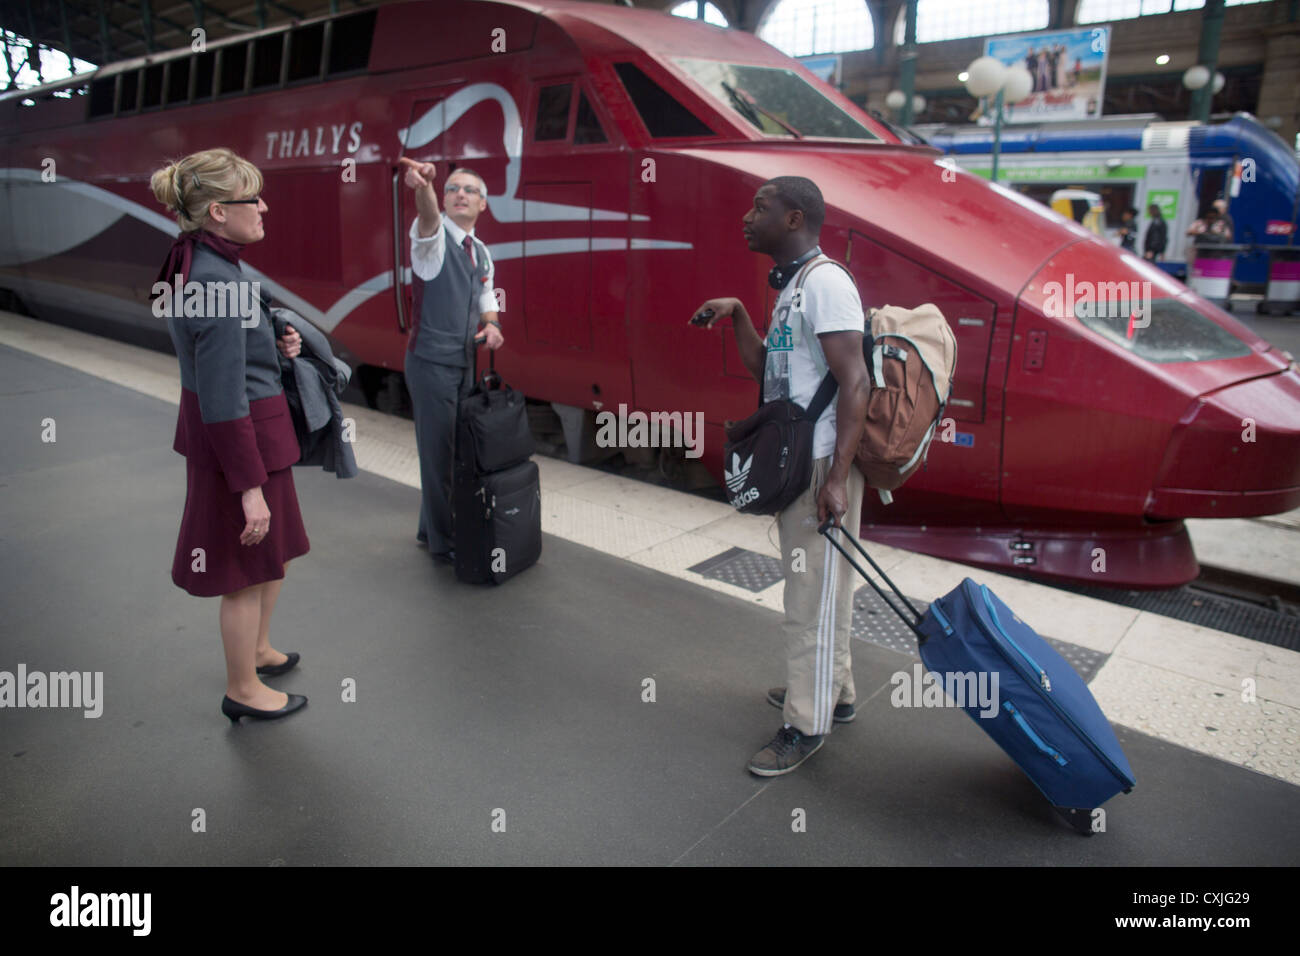 SNCF at the buffers a maroon Thalys train at Paris Gare du Nord railway station in France - Stock Image